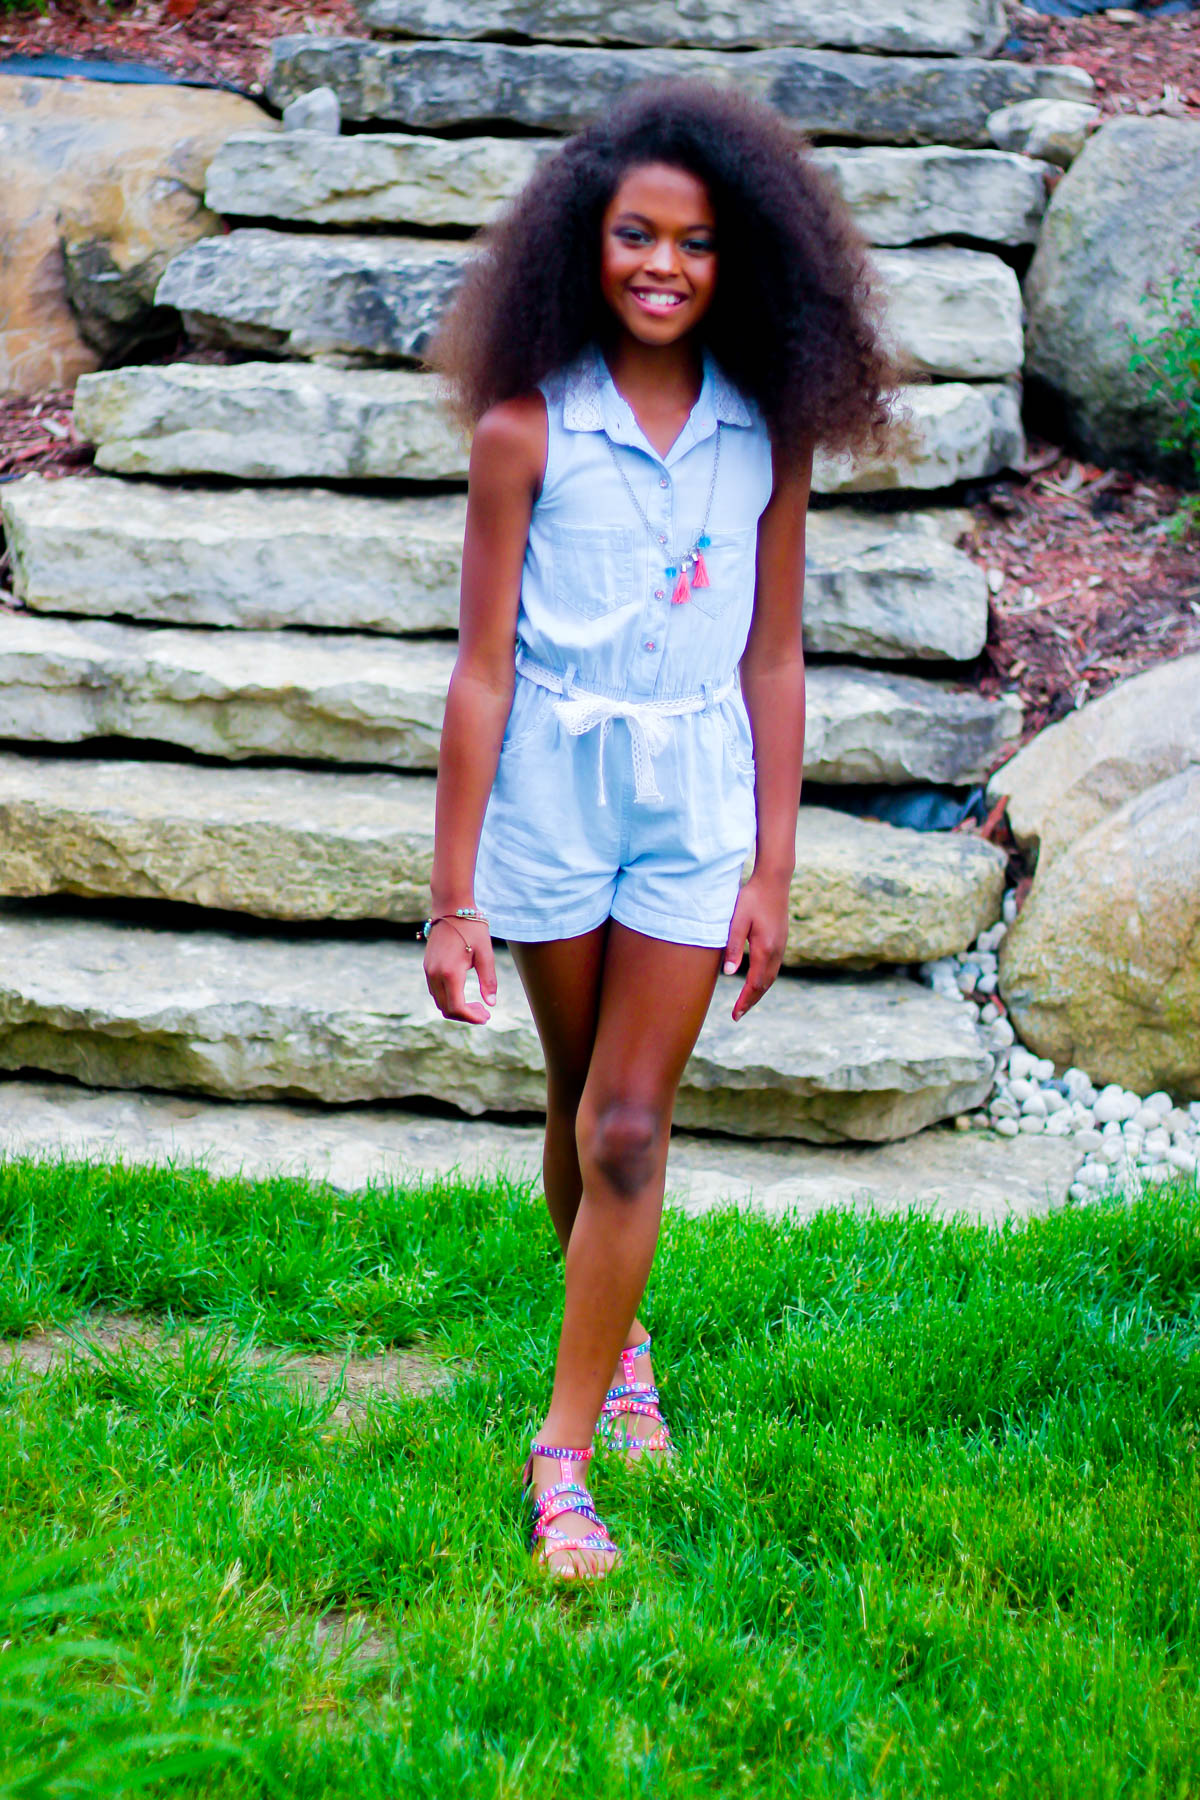 afro on young girl